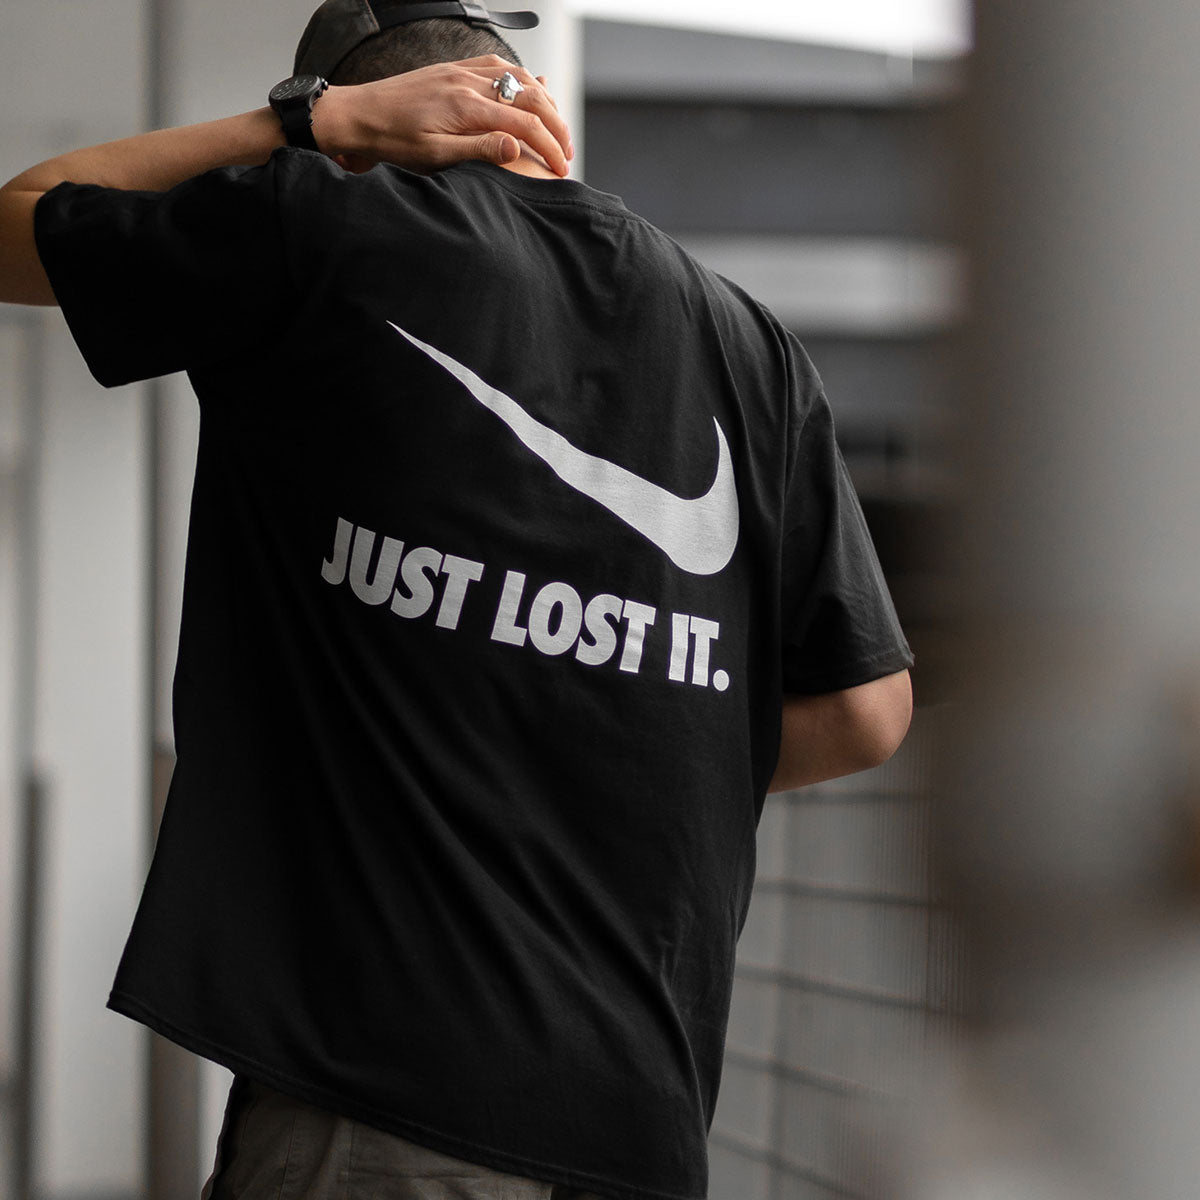 finest selection 7acd9 aef97 Lost It - Tshirt - Black